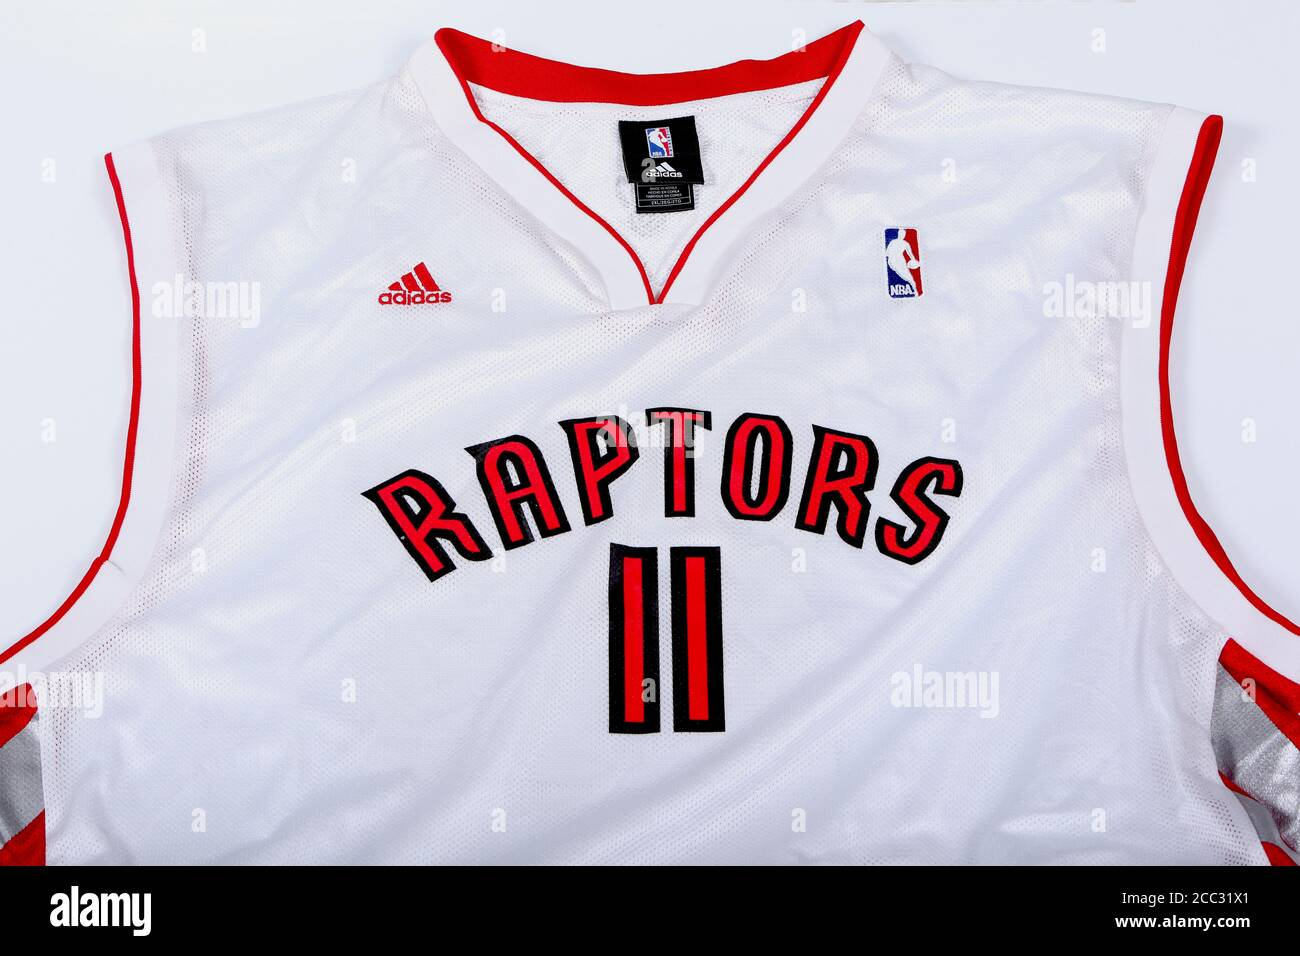 White Toronto Raptors Jersey Adidas Number 11 of TJ Ford before ...